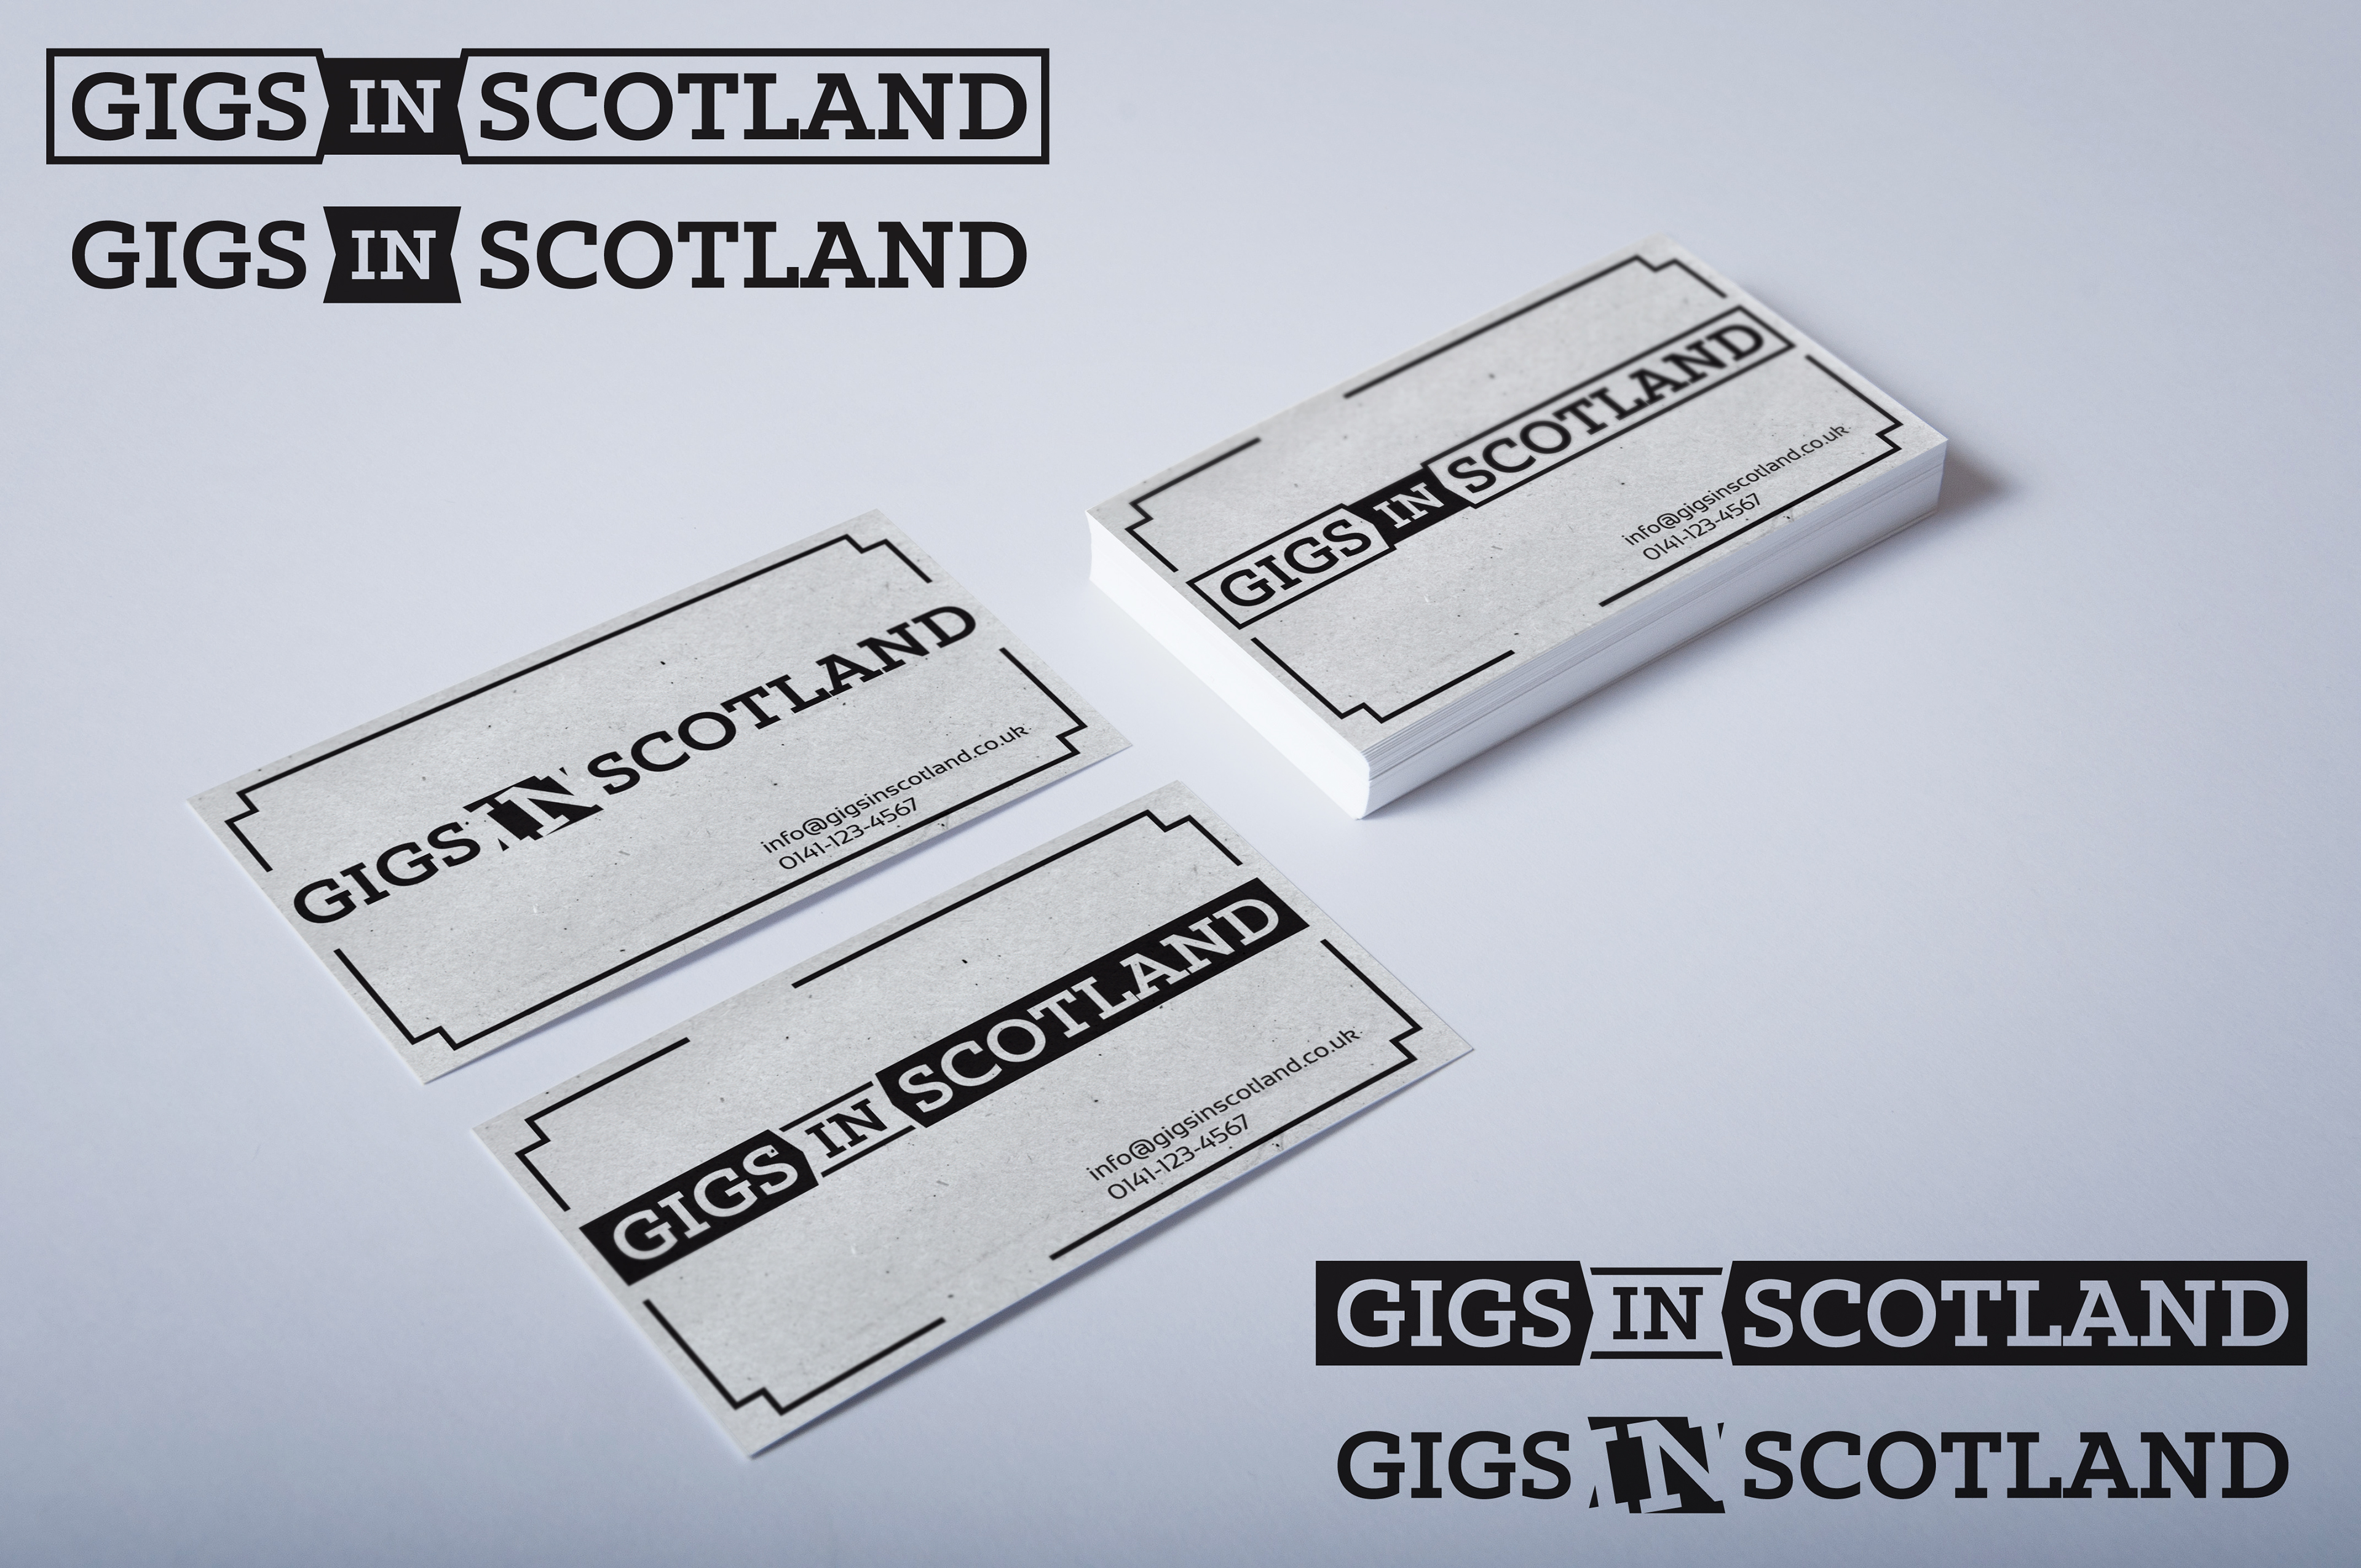 Another leaf creative graphic design gigs in scotland business for gigs in scotland a gig listing and ticket buying website covering events across scotland i created three versions with subtle variations reheart Choice Image